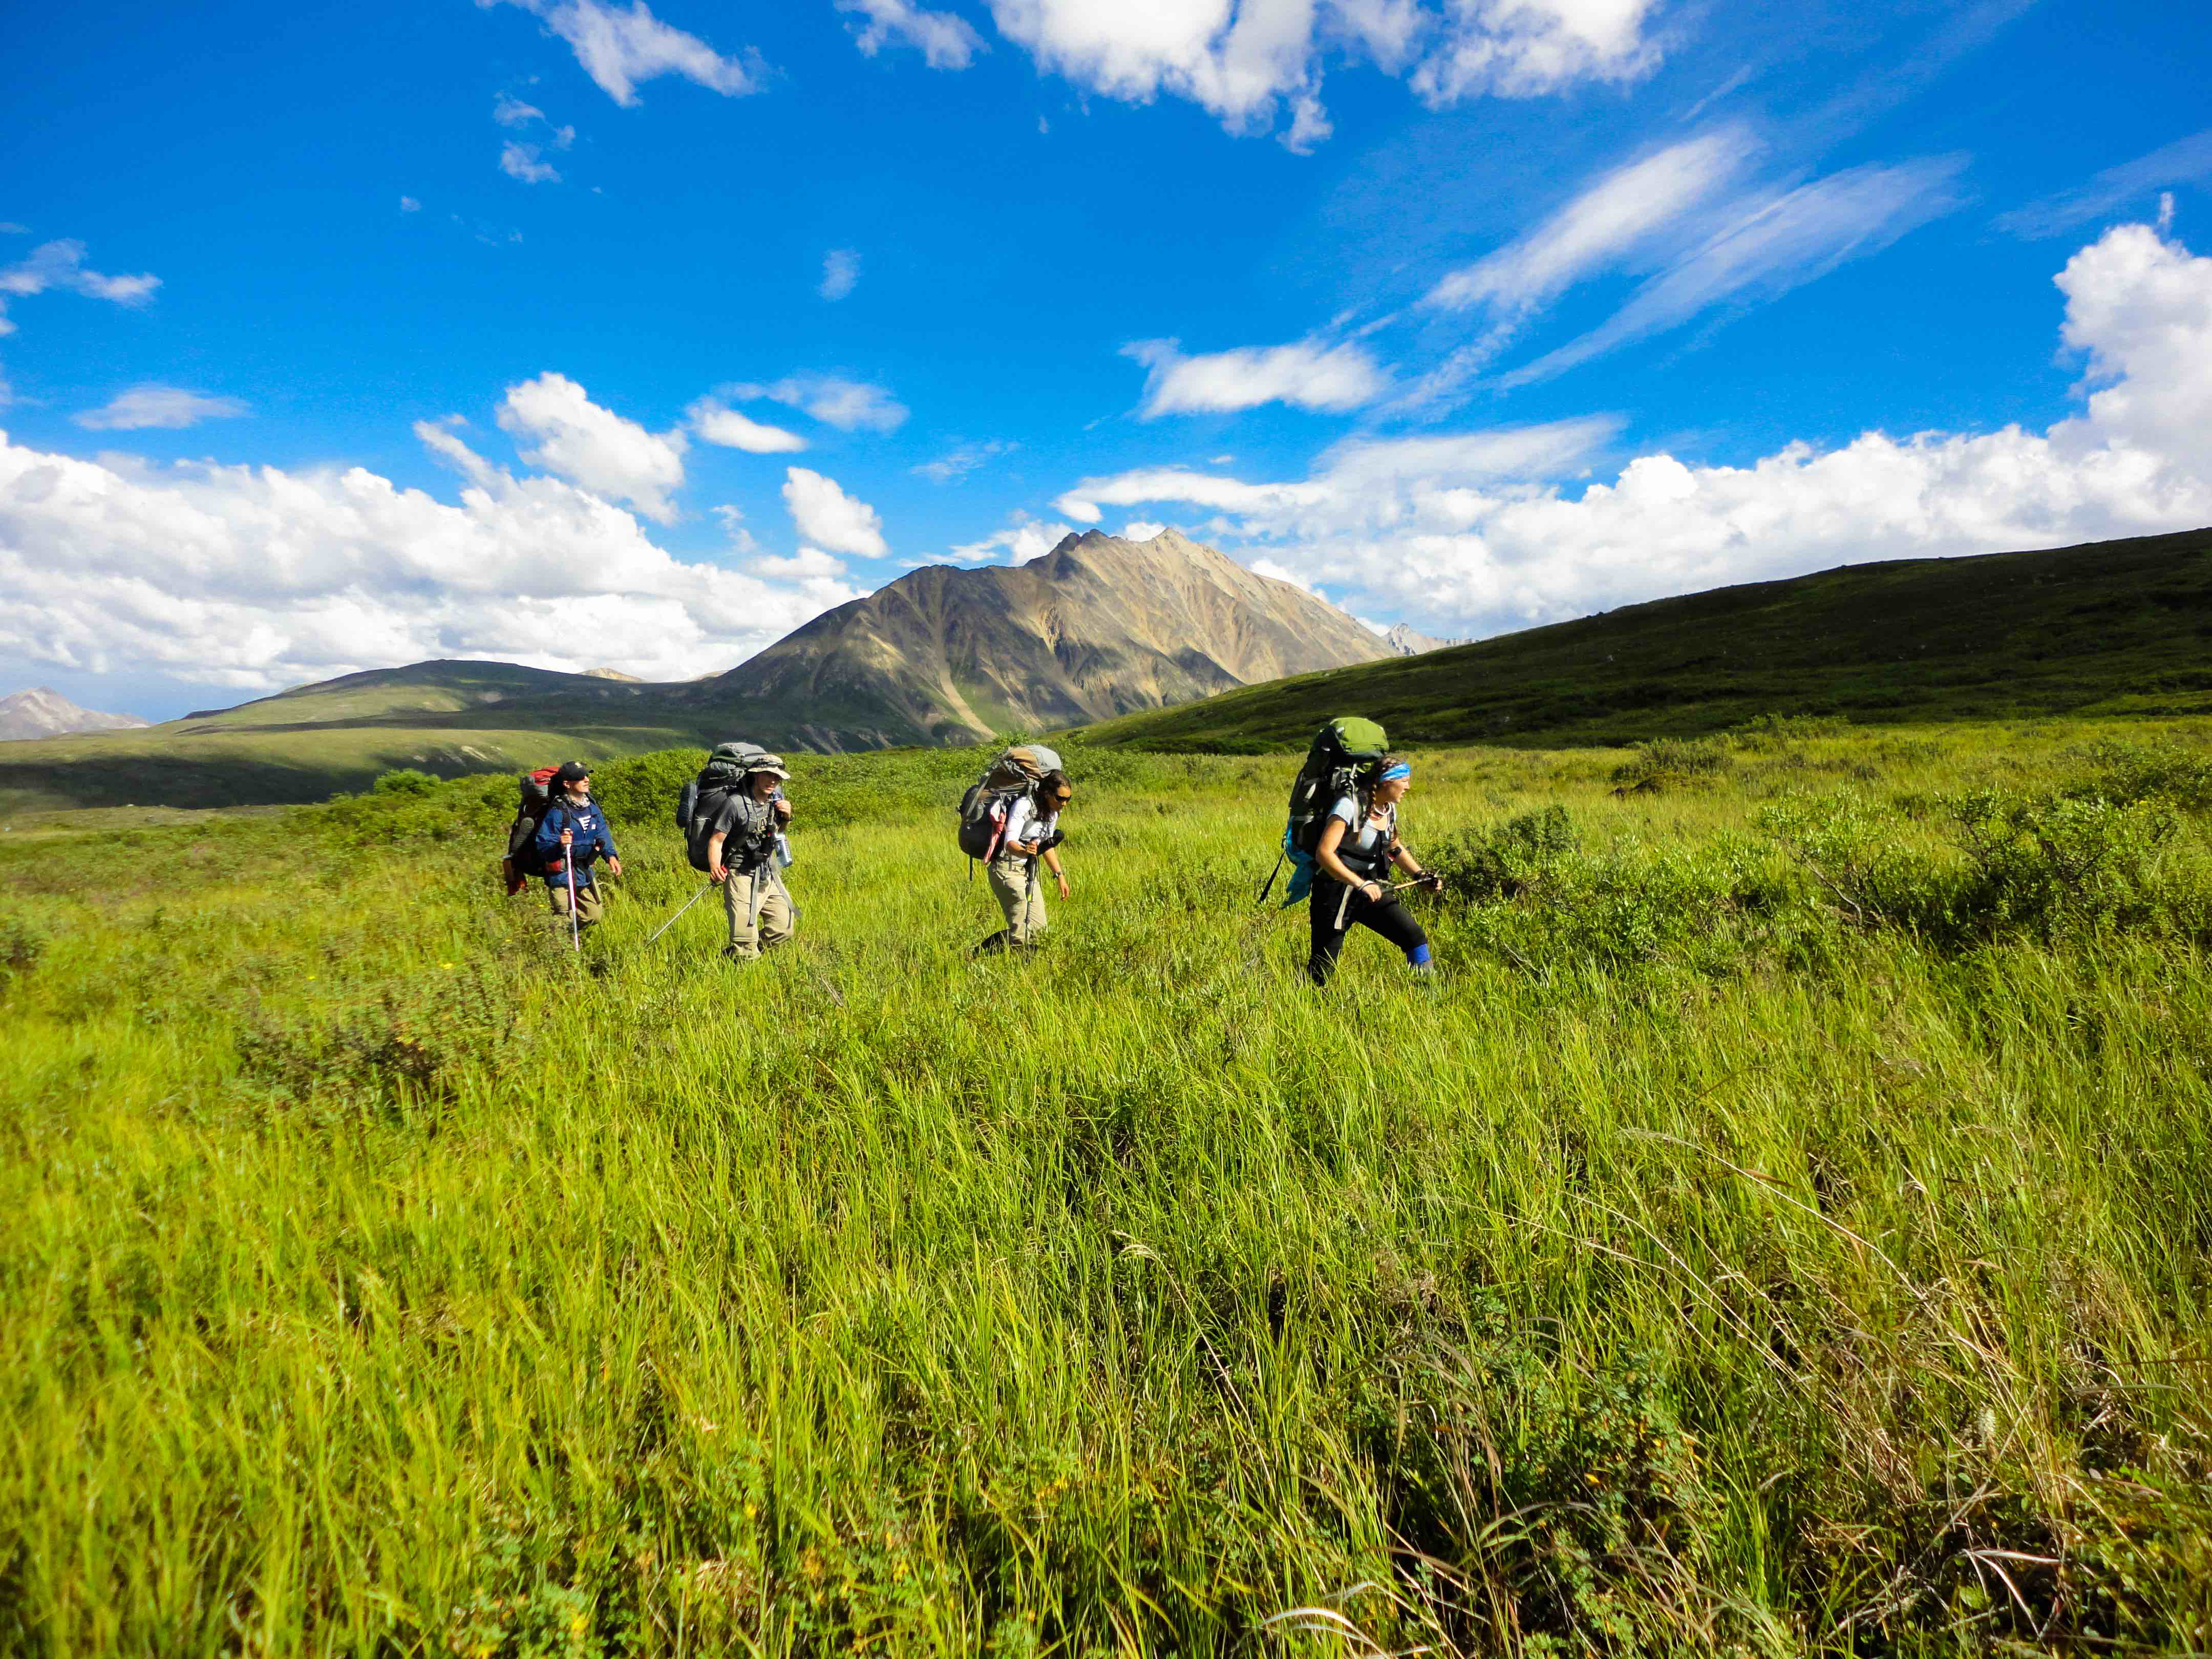 Group of four backpackers crossing a meadow in Alaska